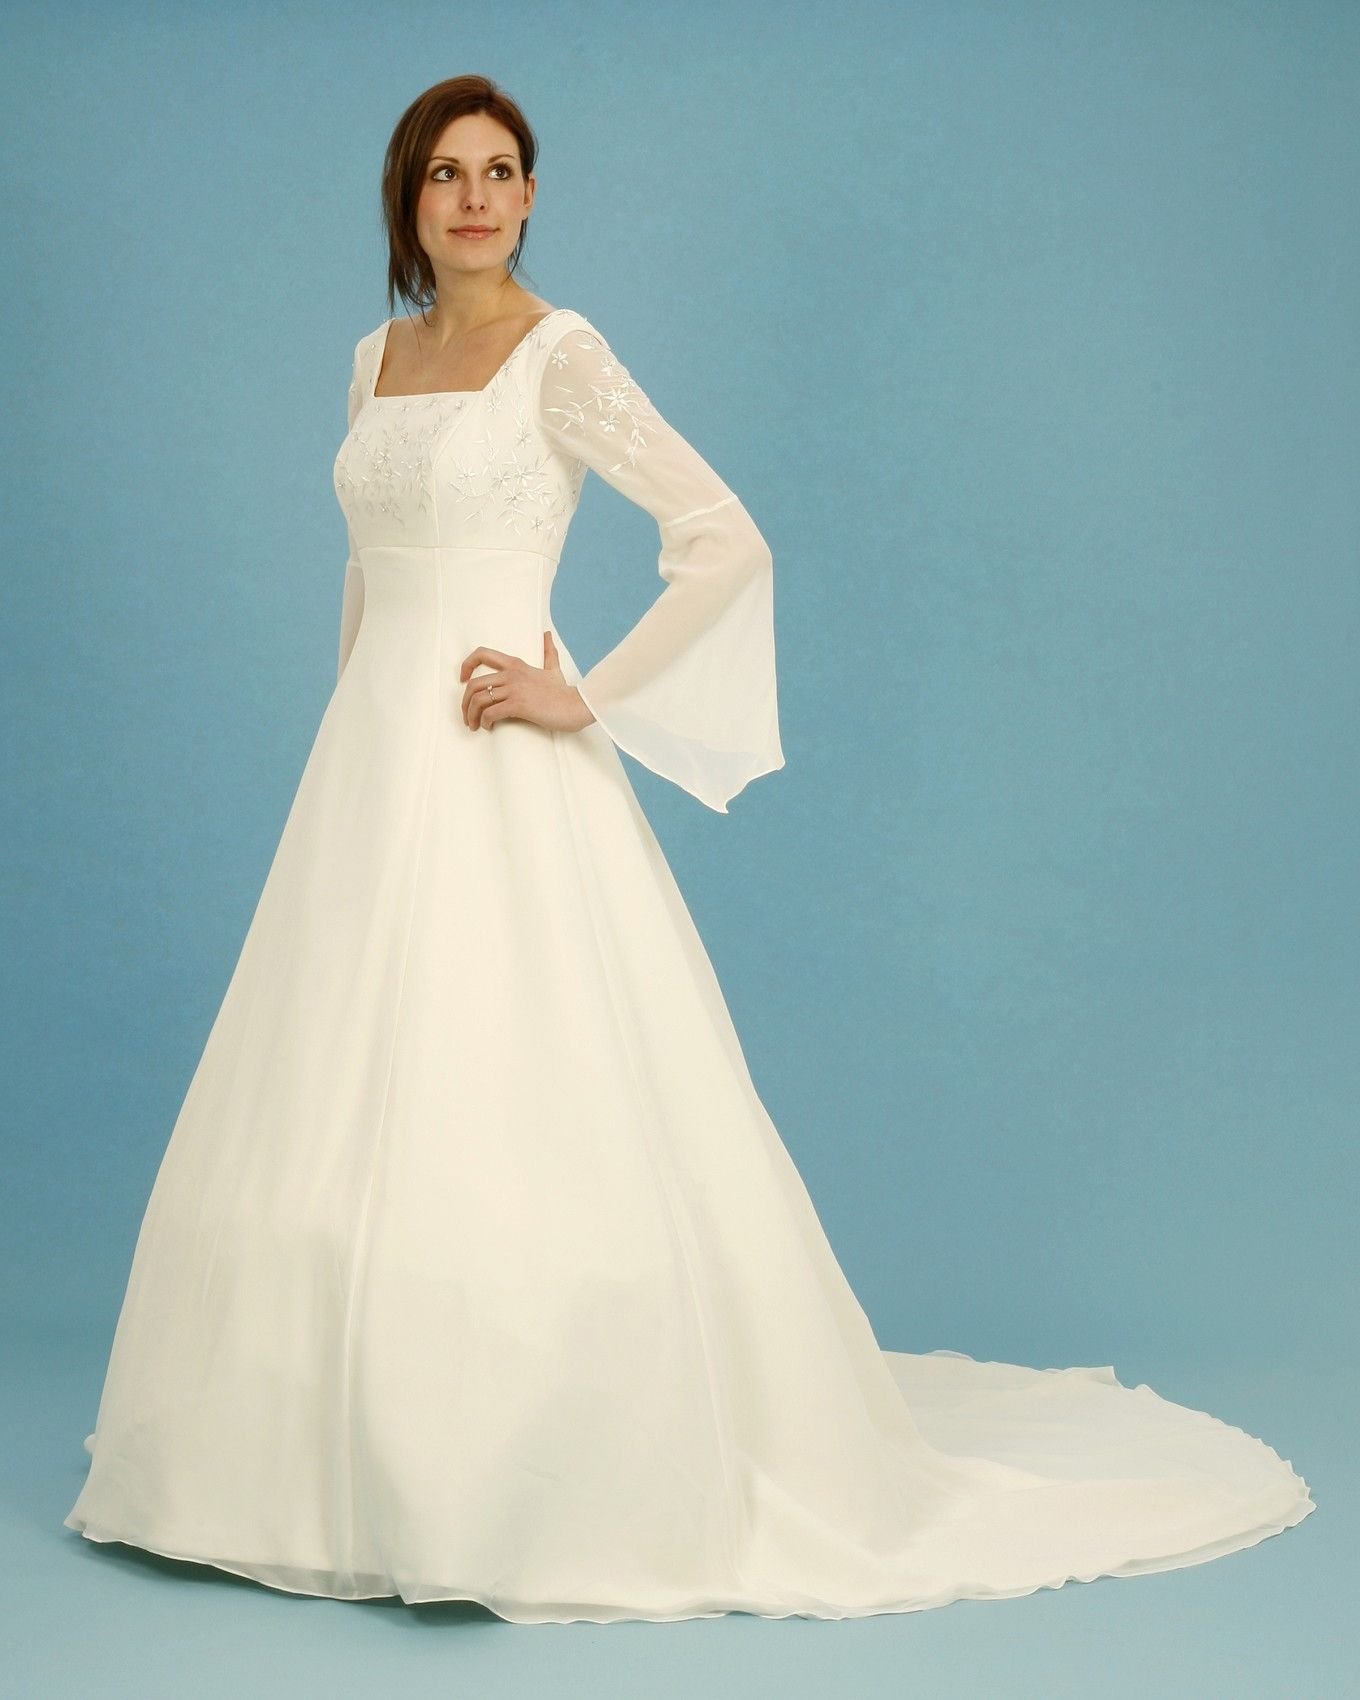 renasscience wedding gowns | ... delivery white medieval style long ...